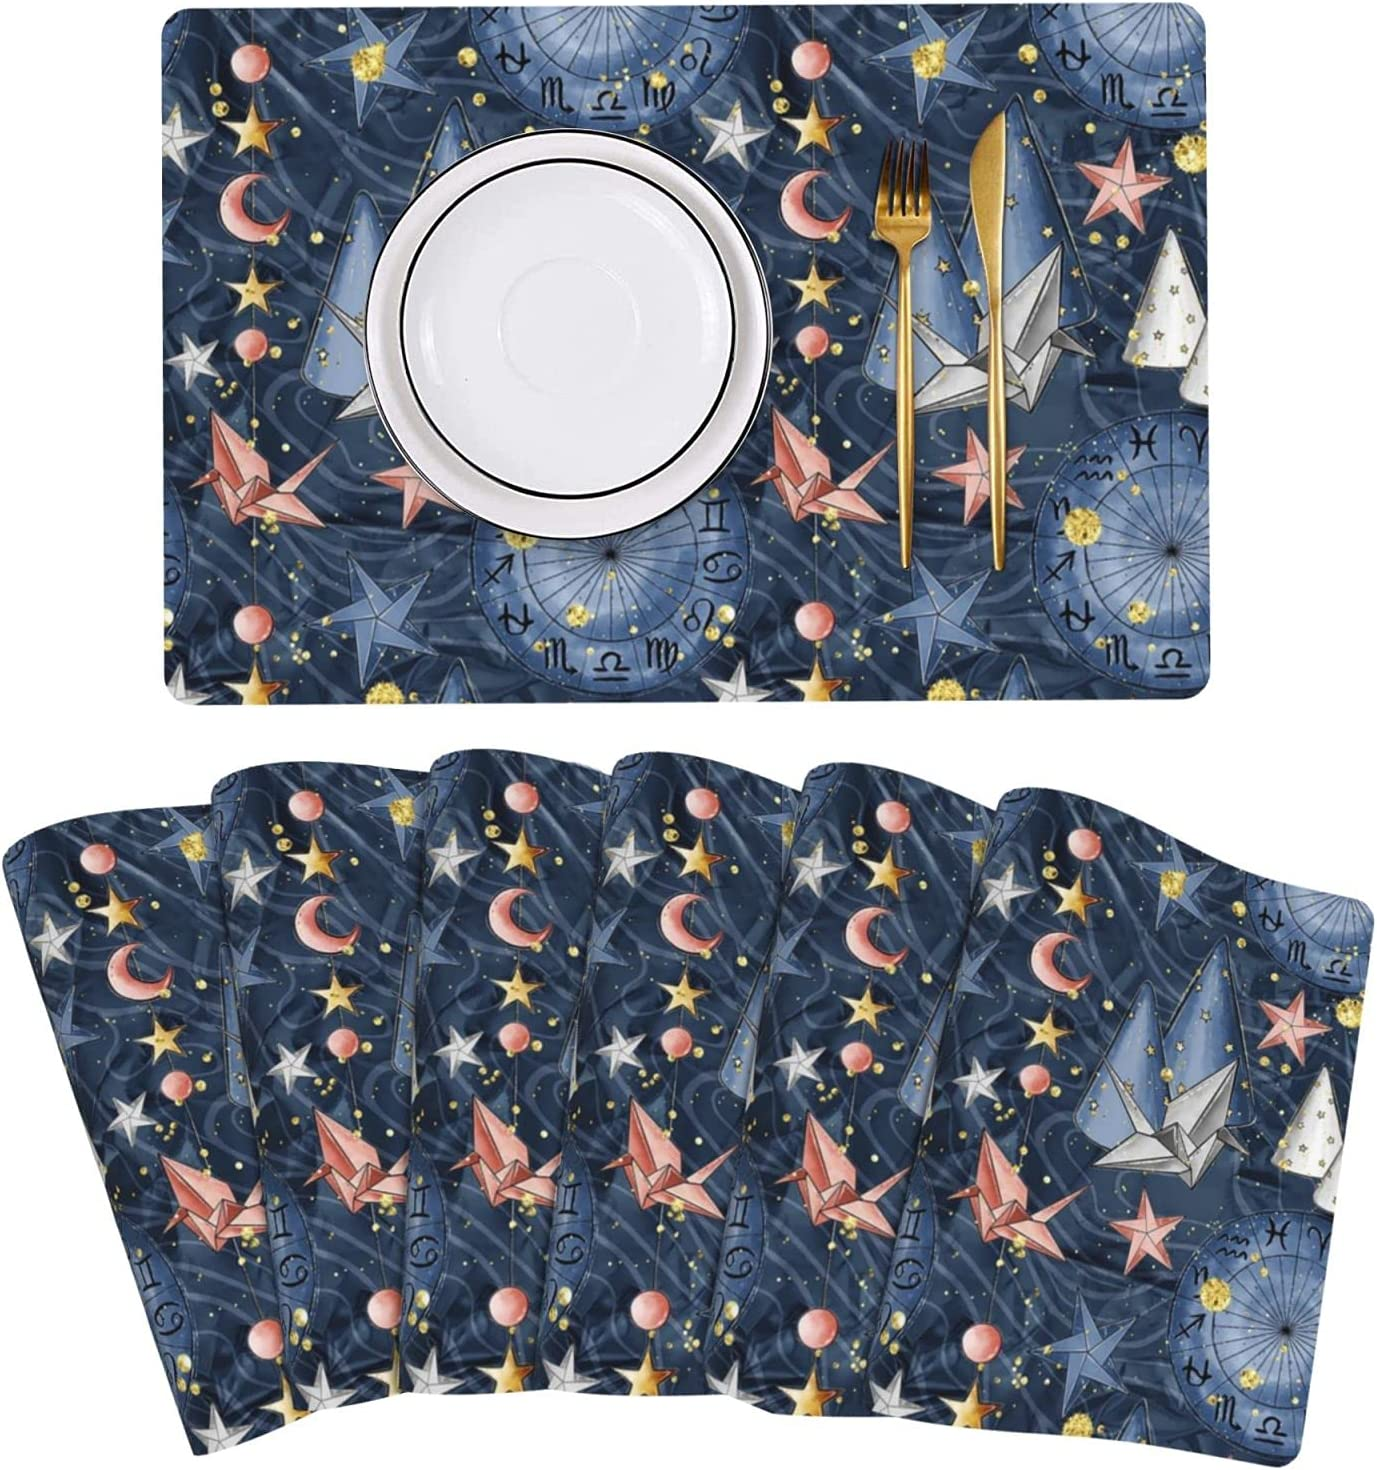 Quality inspection Origami Bird Star Constellation Placemat Leather Mats Set Bombing free shipping Table